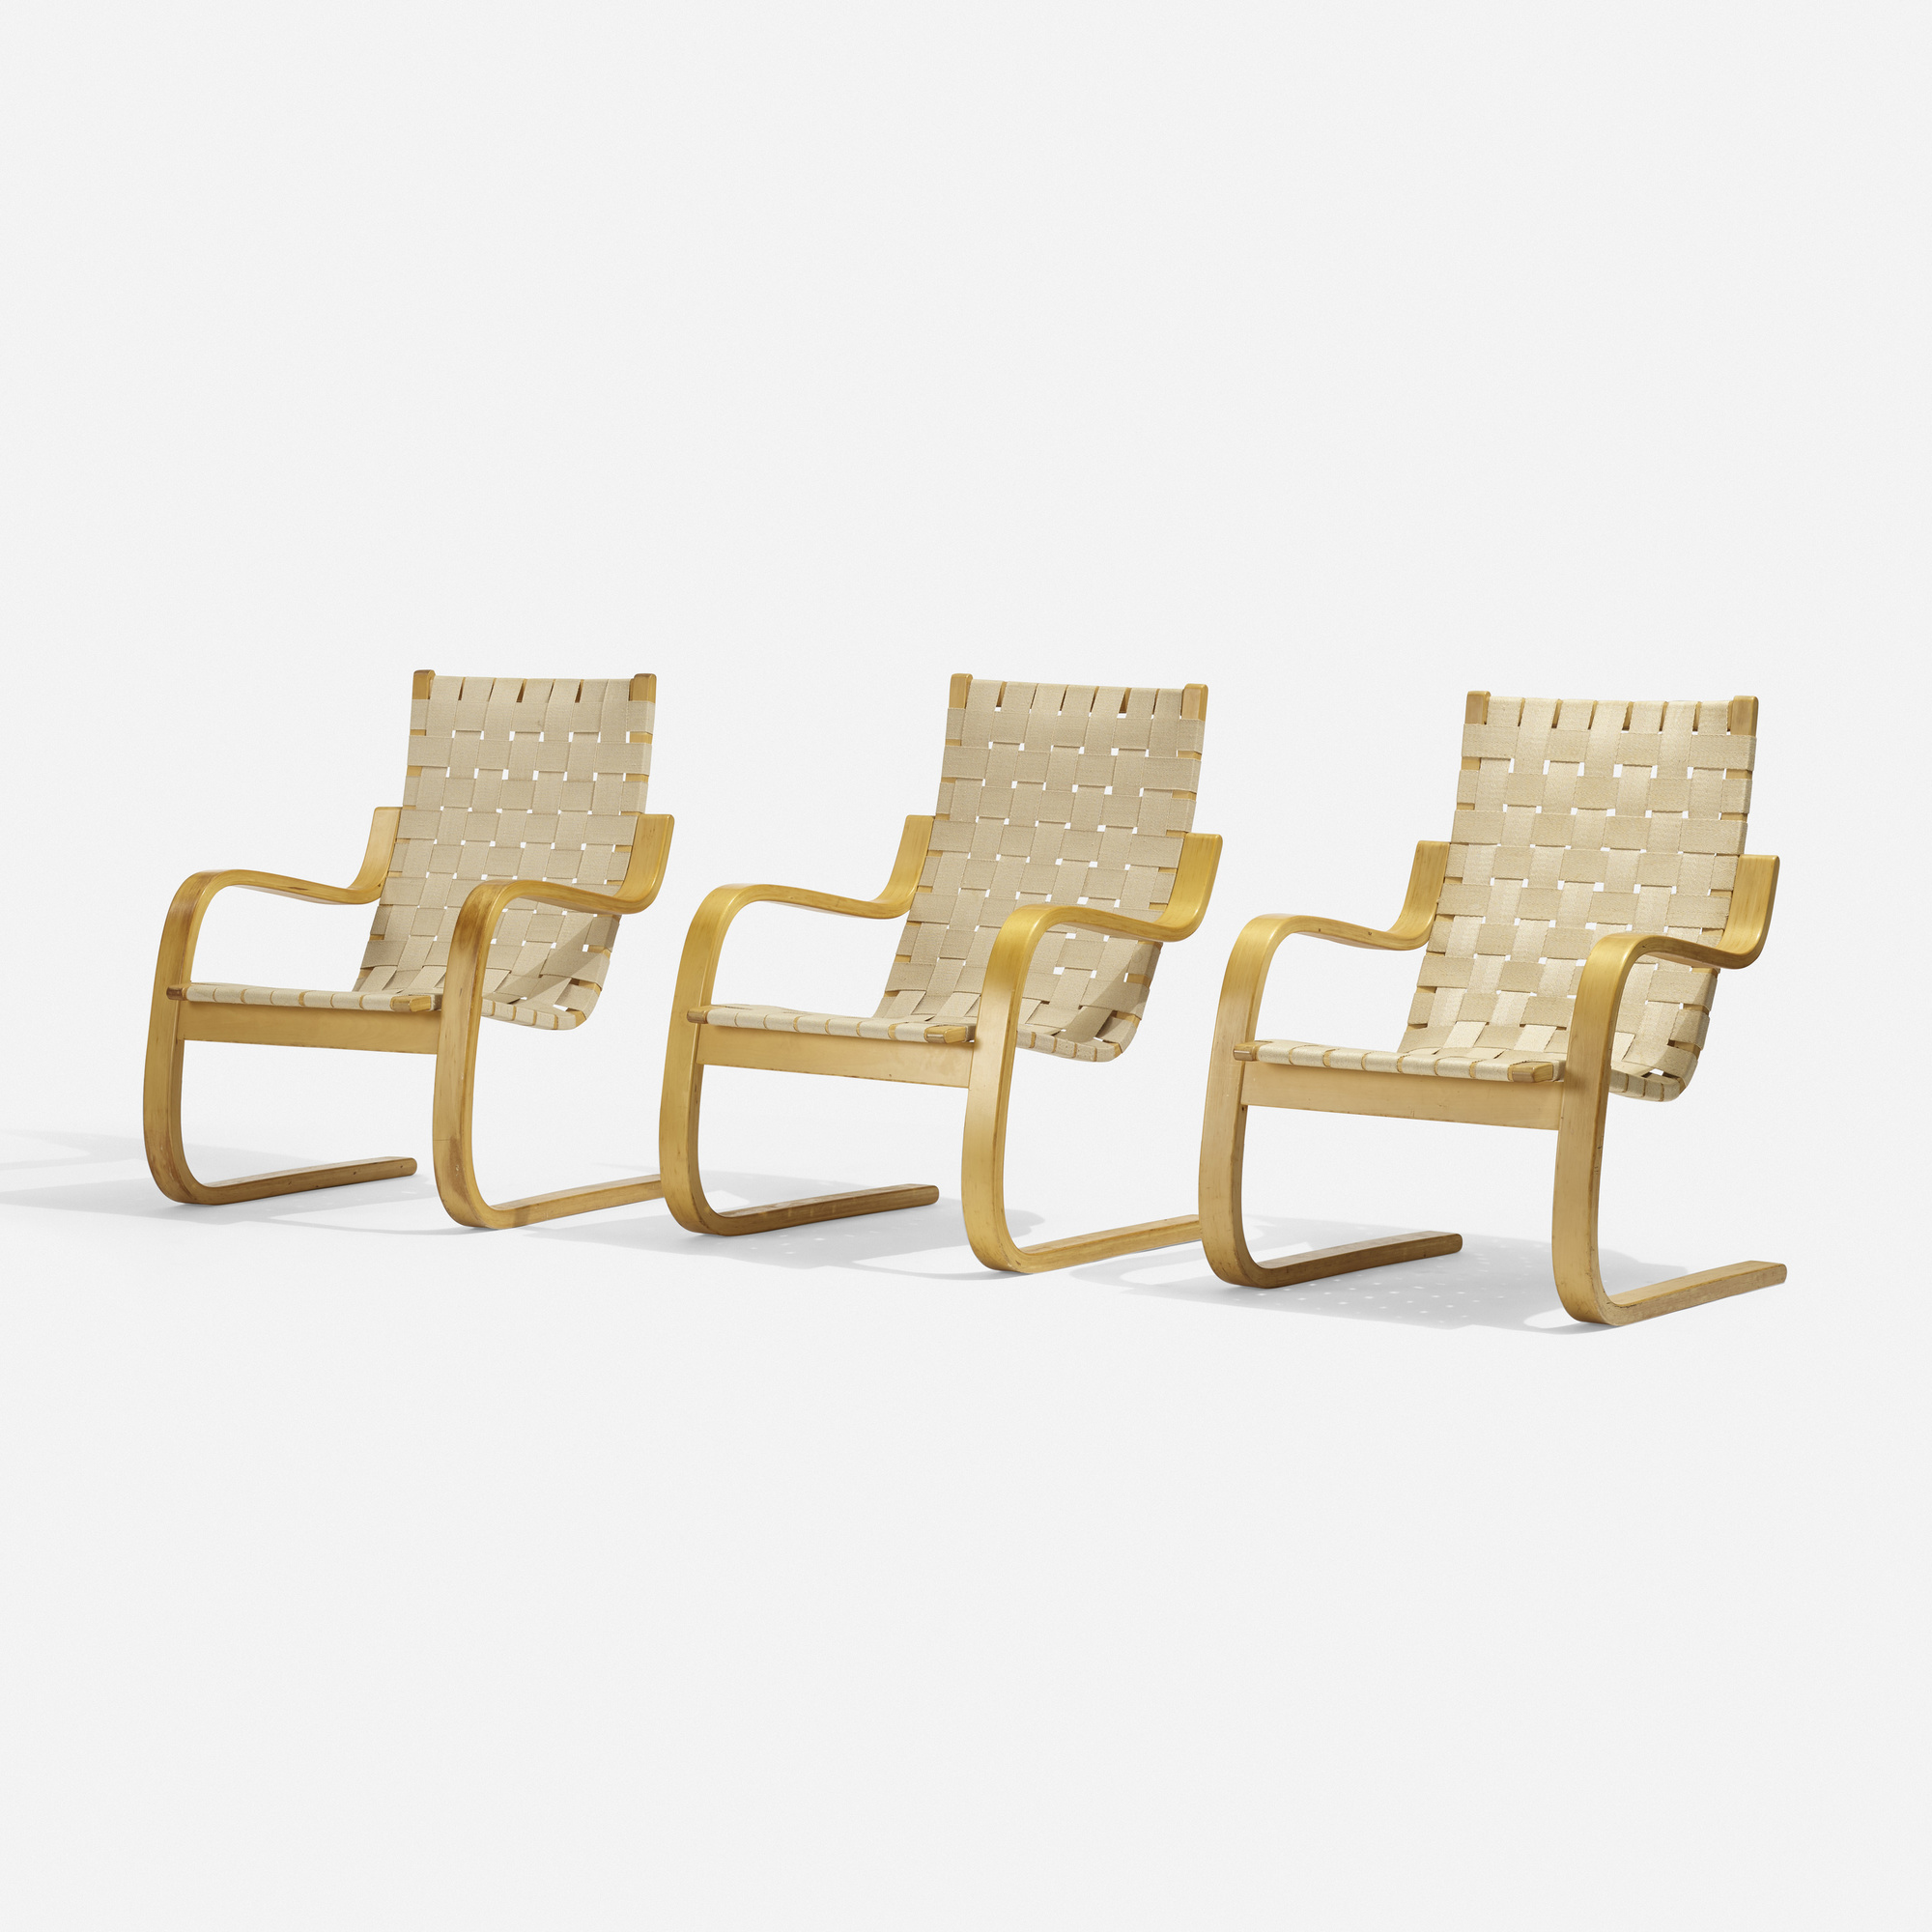 237: Alvar Aalto / Cantilevered Chairs Model 406, Set Of Three (1 Of